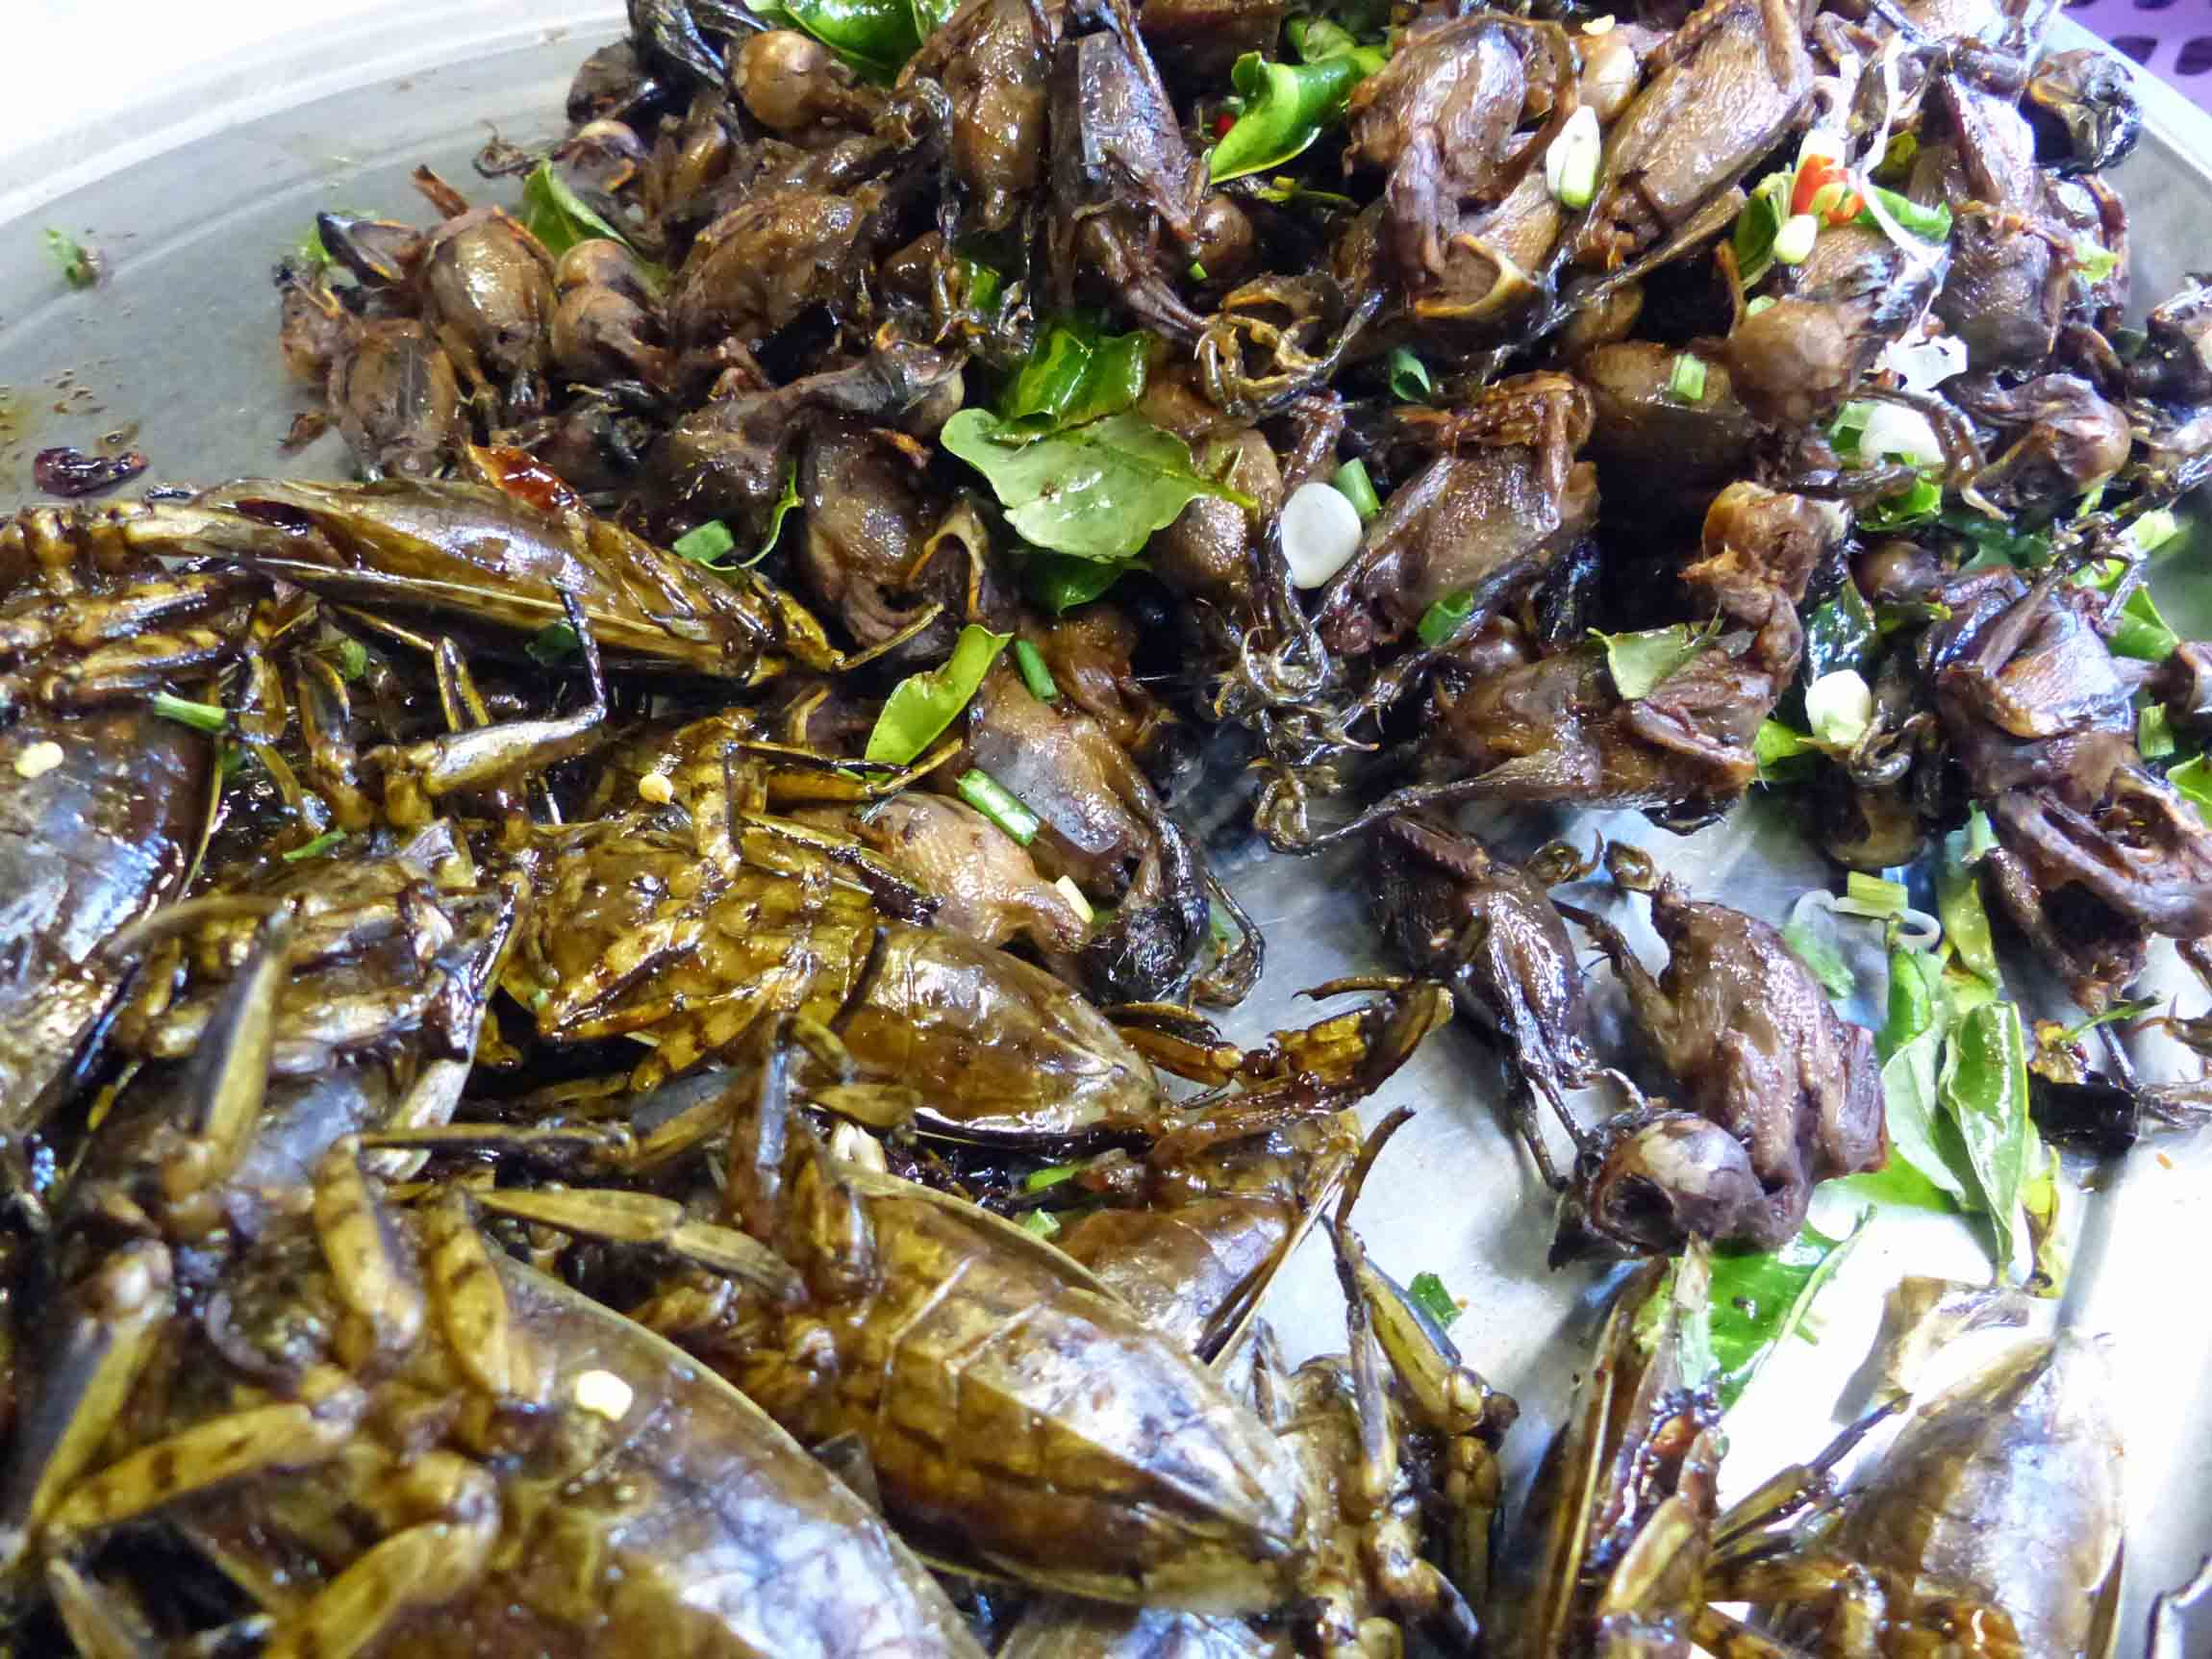 Platter of fried insects